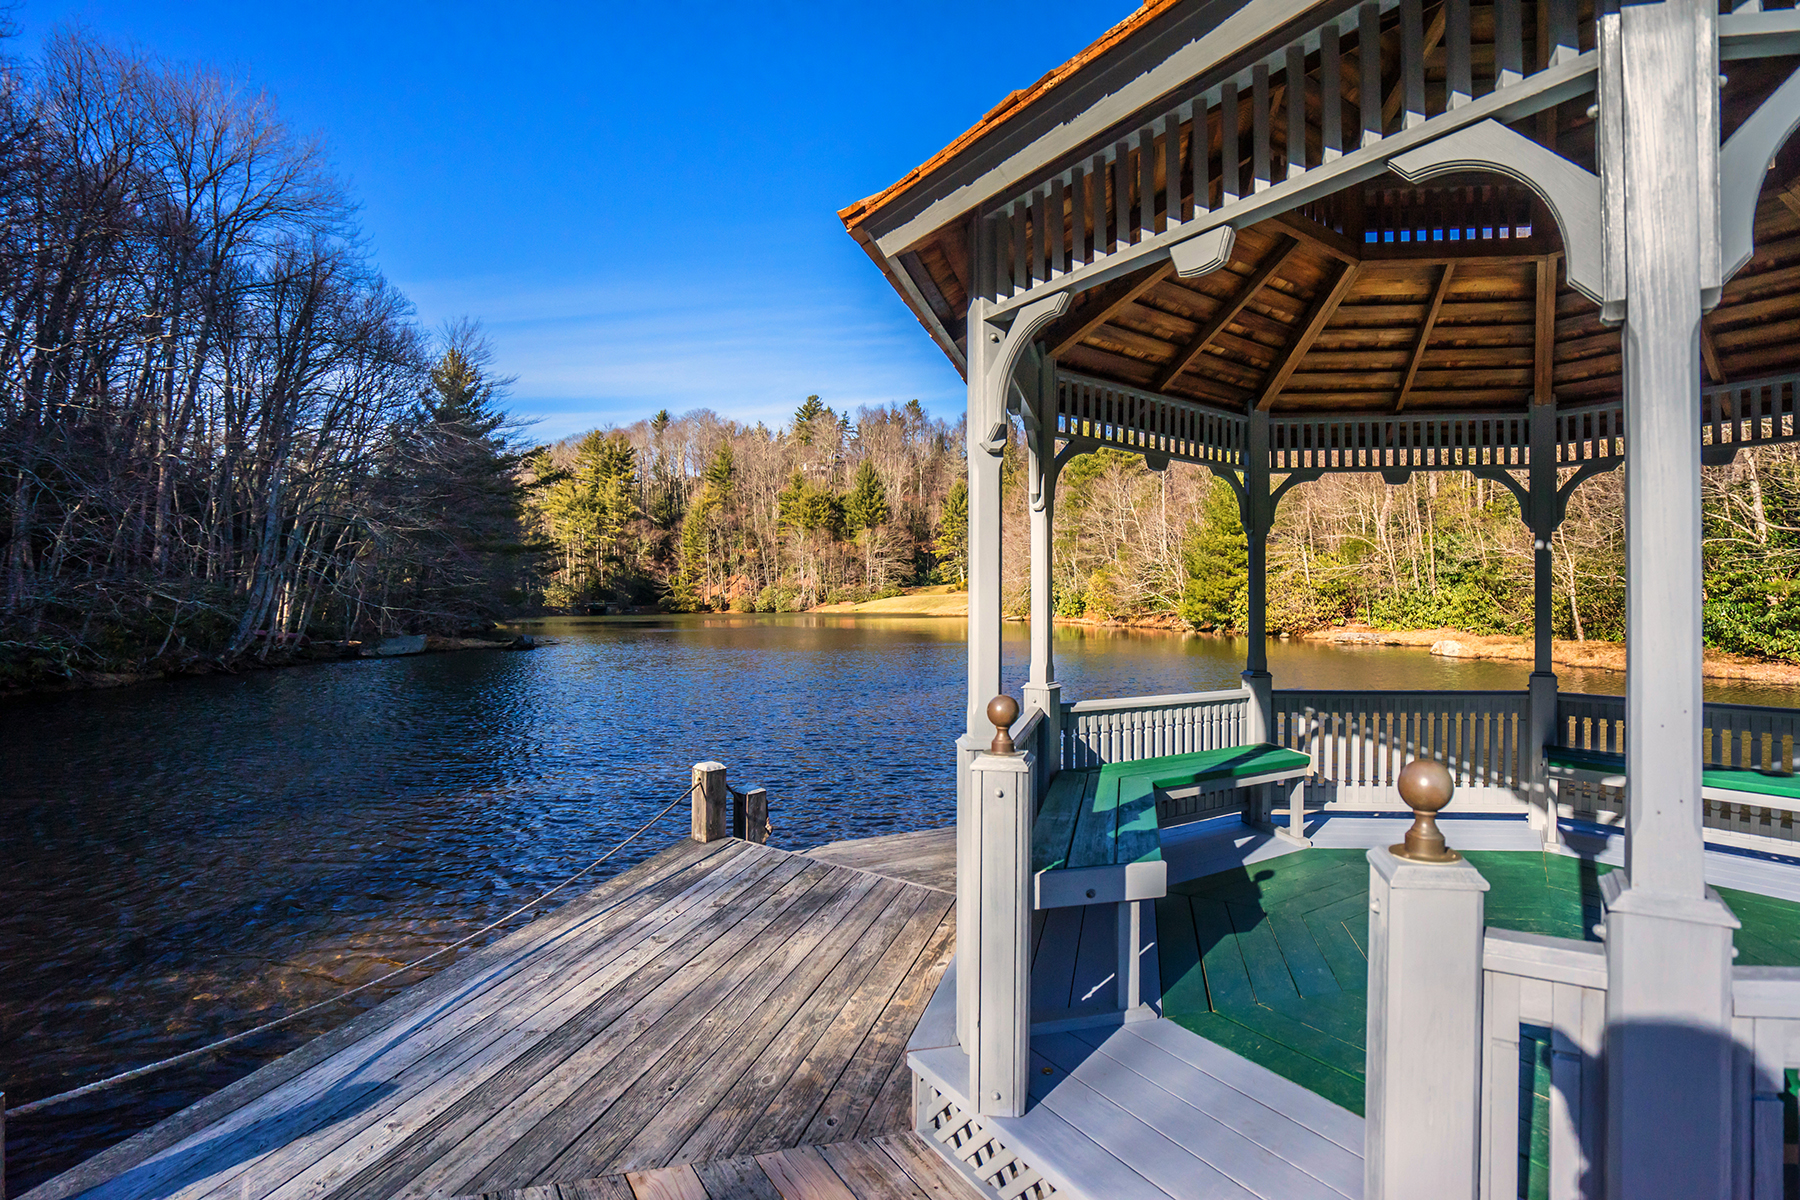 Single Family Home for Sale at Blowing Rock 410 New River Lake Drive N/A, Blowing Rock, North Carolina 28605 United States